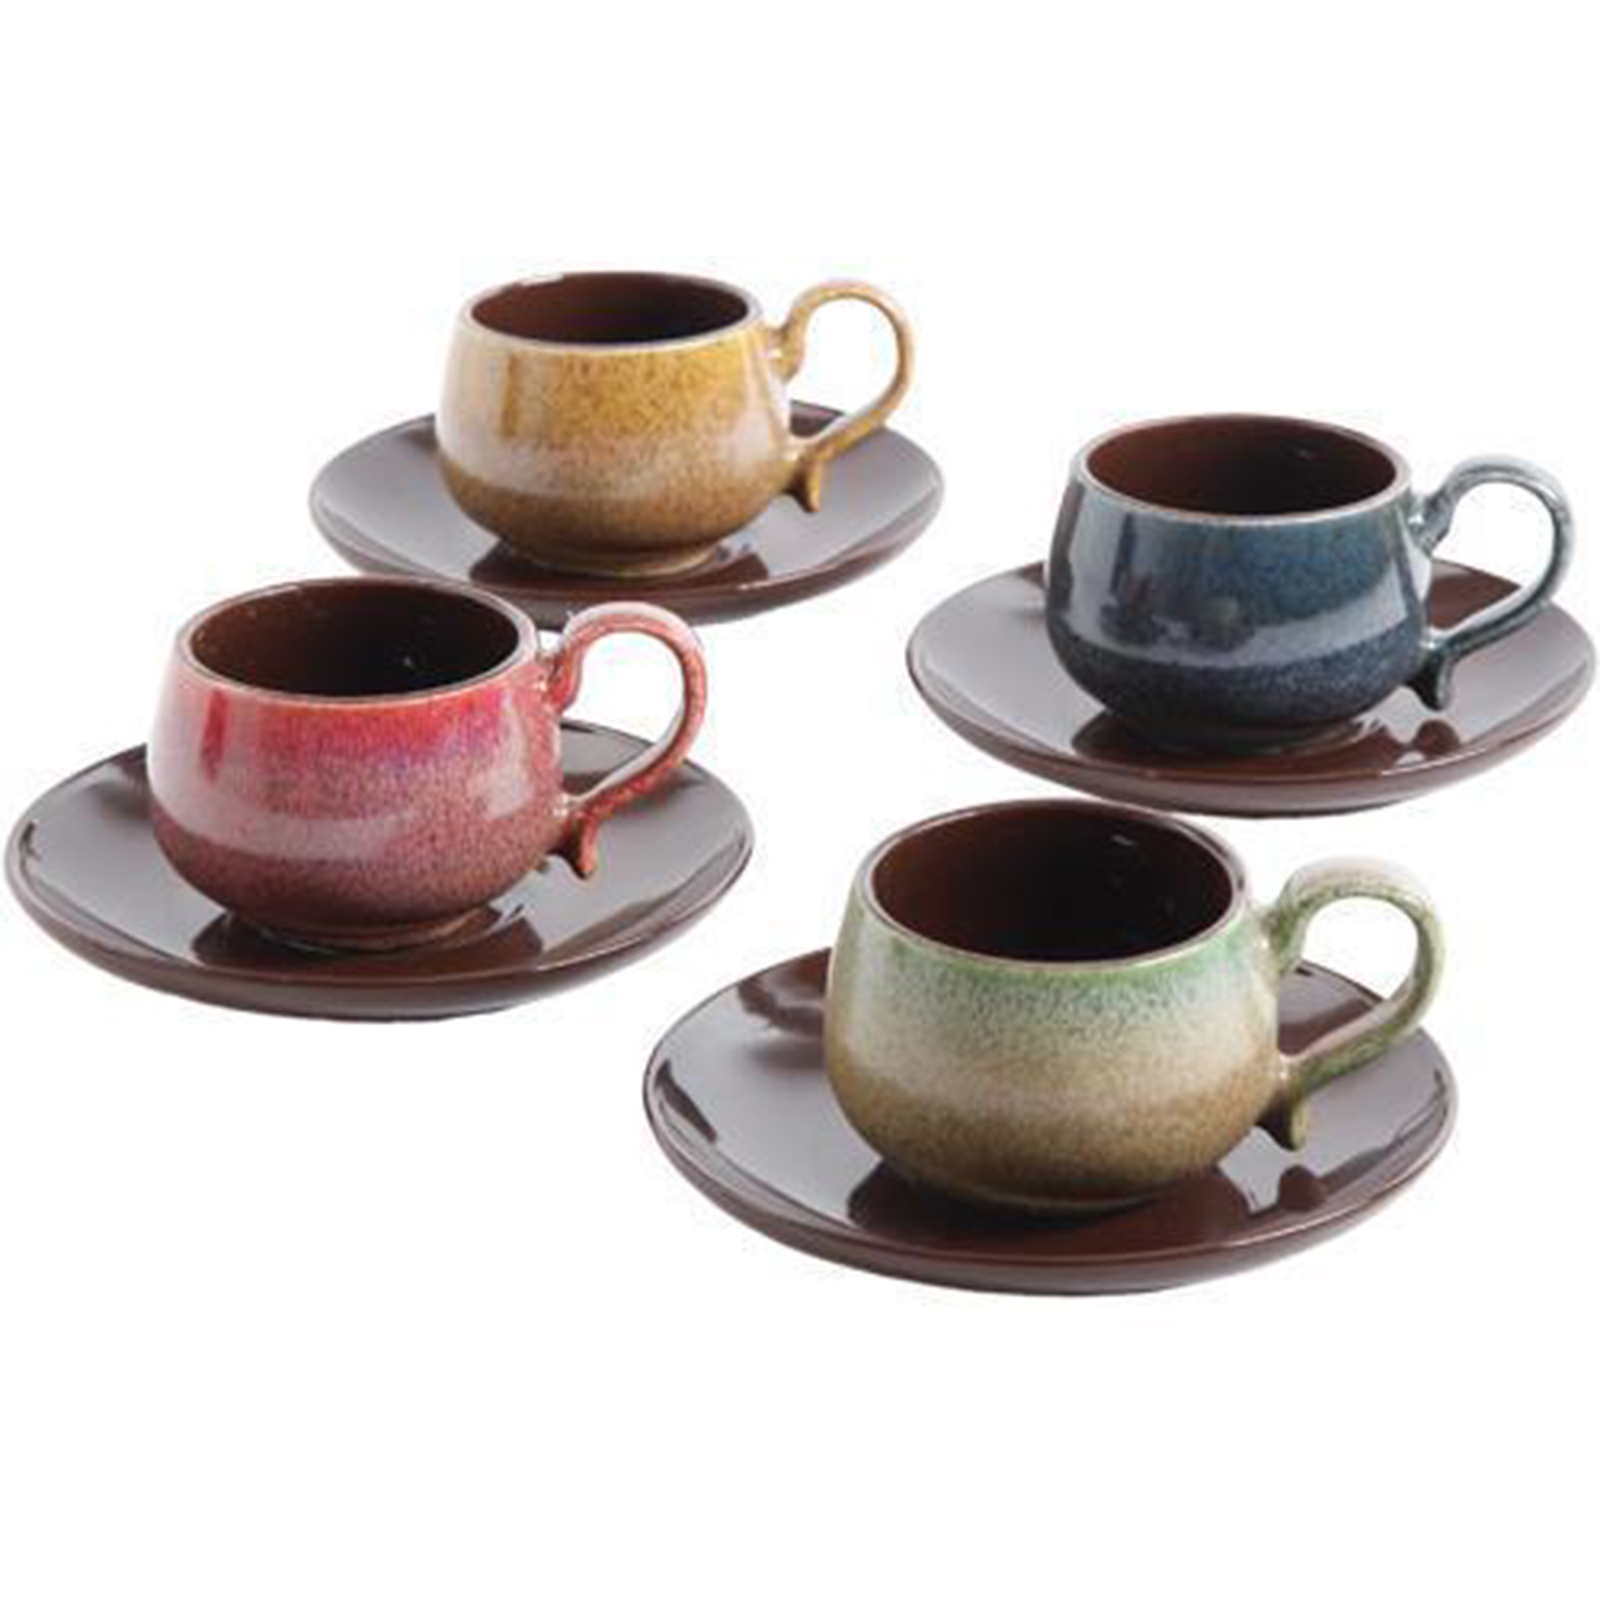 8 Piece Espresso Cup And Saucer Set For 4 Multicolor ...